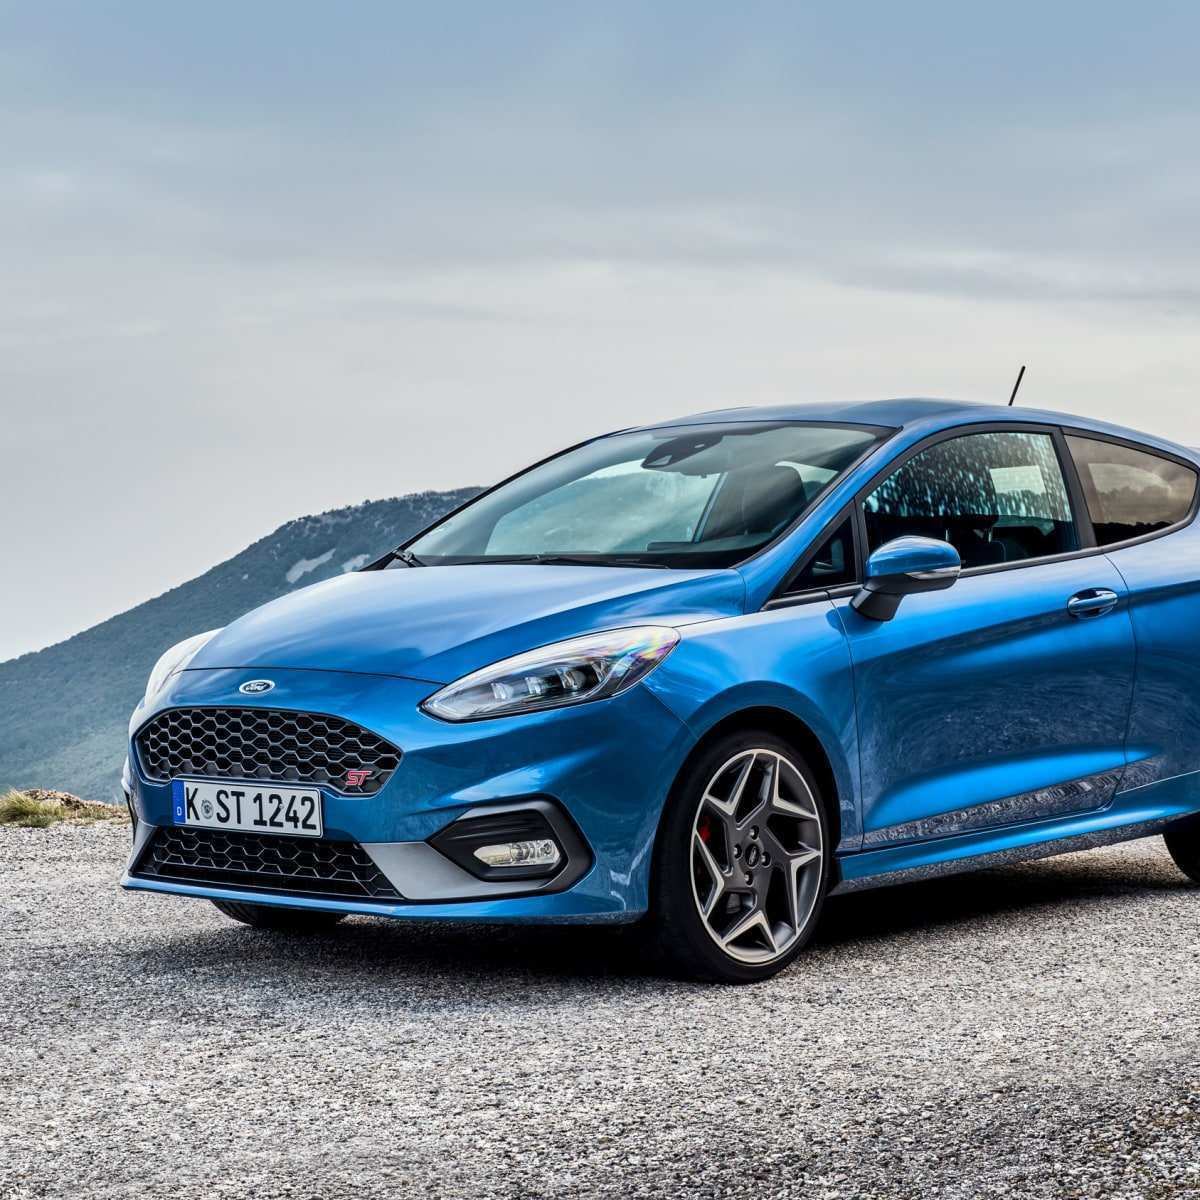 75 All New 2019 Fiesta St Pricing